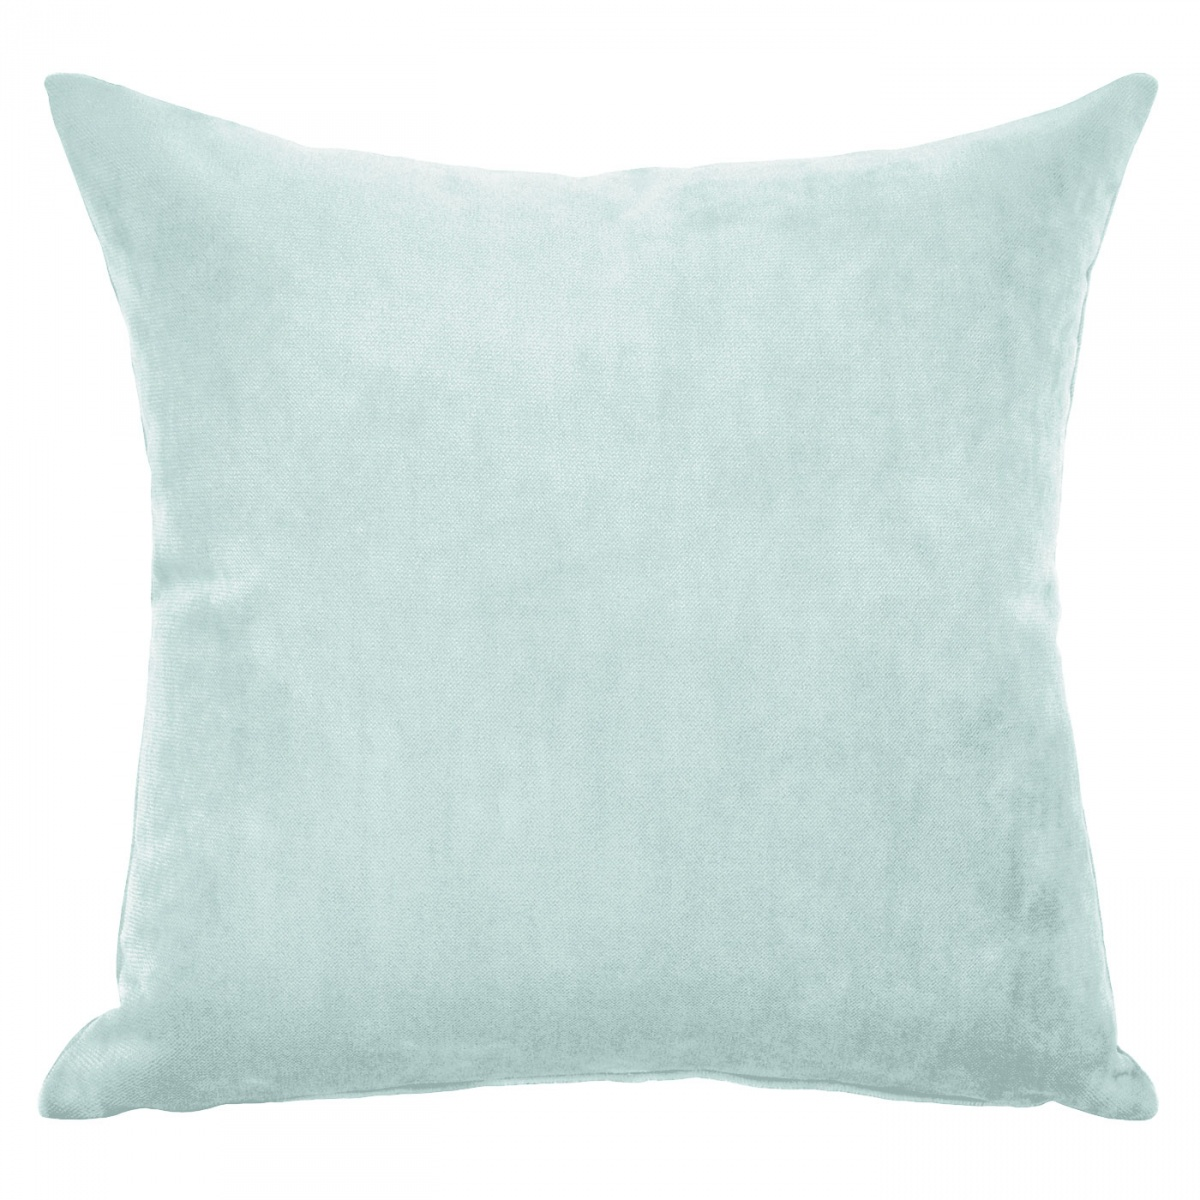 Mystere Seaspray Velvet Cushion - 45x45cm